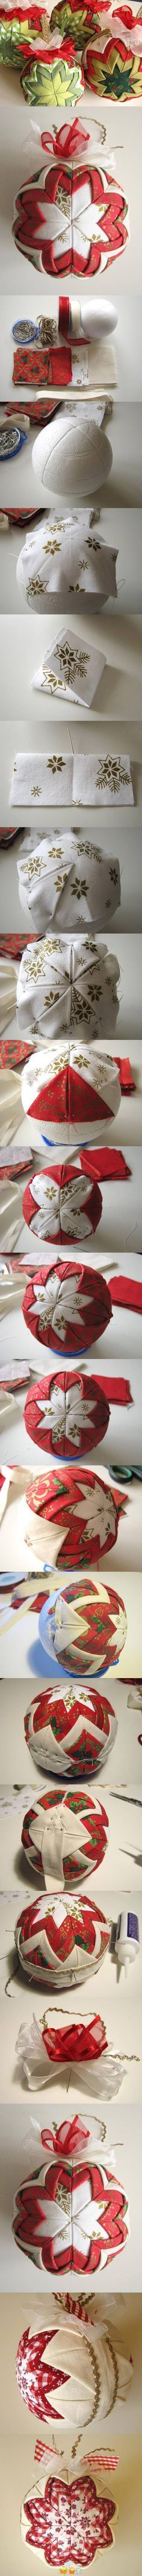 I am definately going to do this to add to all of my Christmas Decorations and Artificial Foliage from Shelf Edge - www.shelf-edge.co.uk.